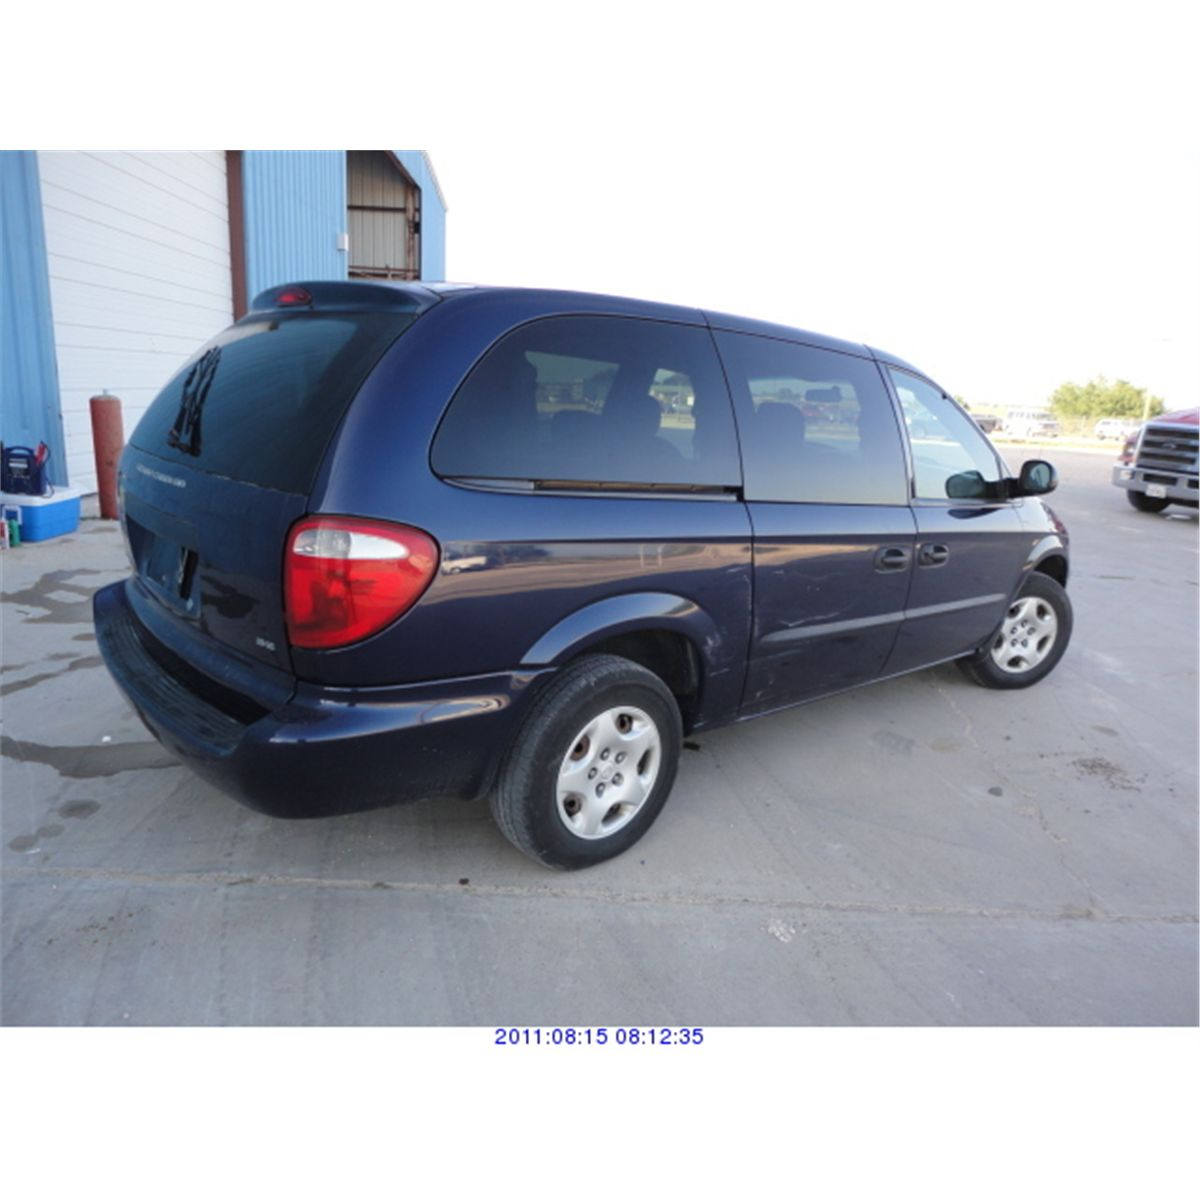 2003 Dodge Caravan: Rod Robertson Enterprises Inc